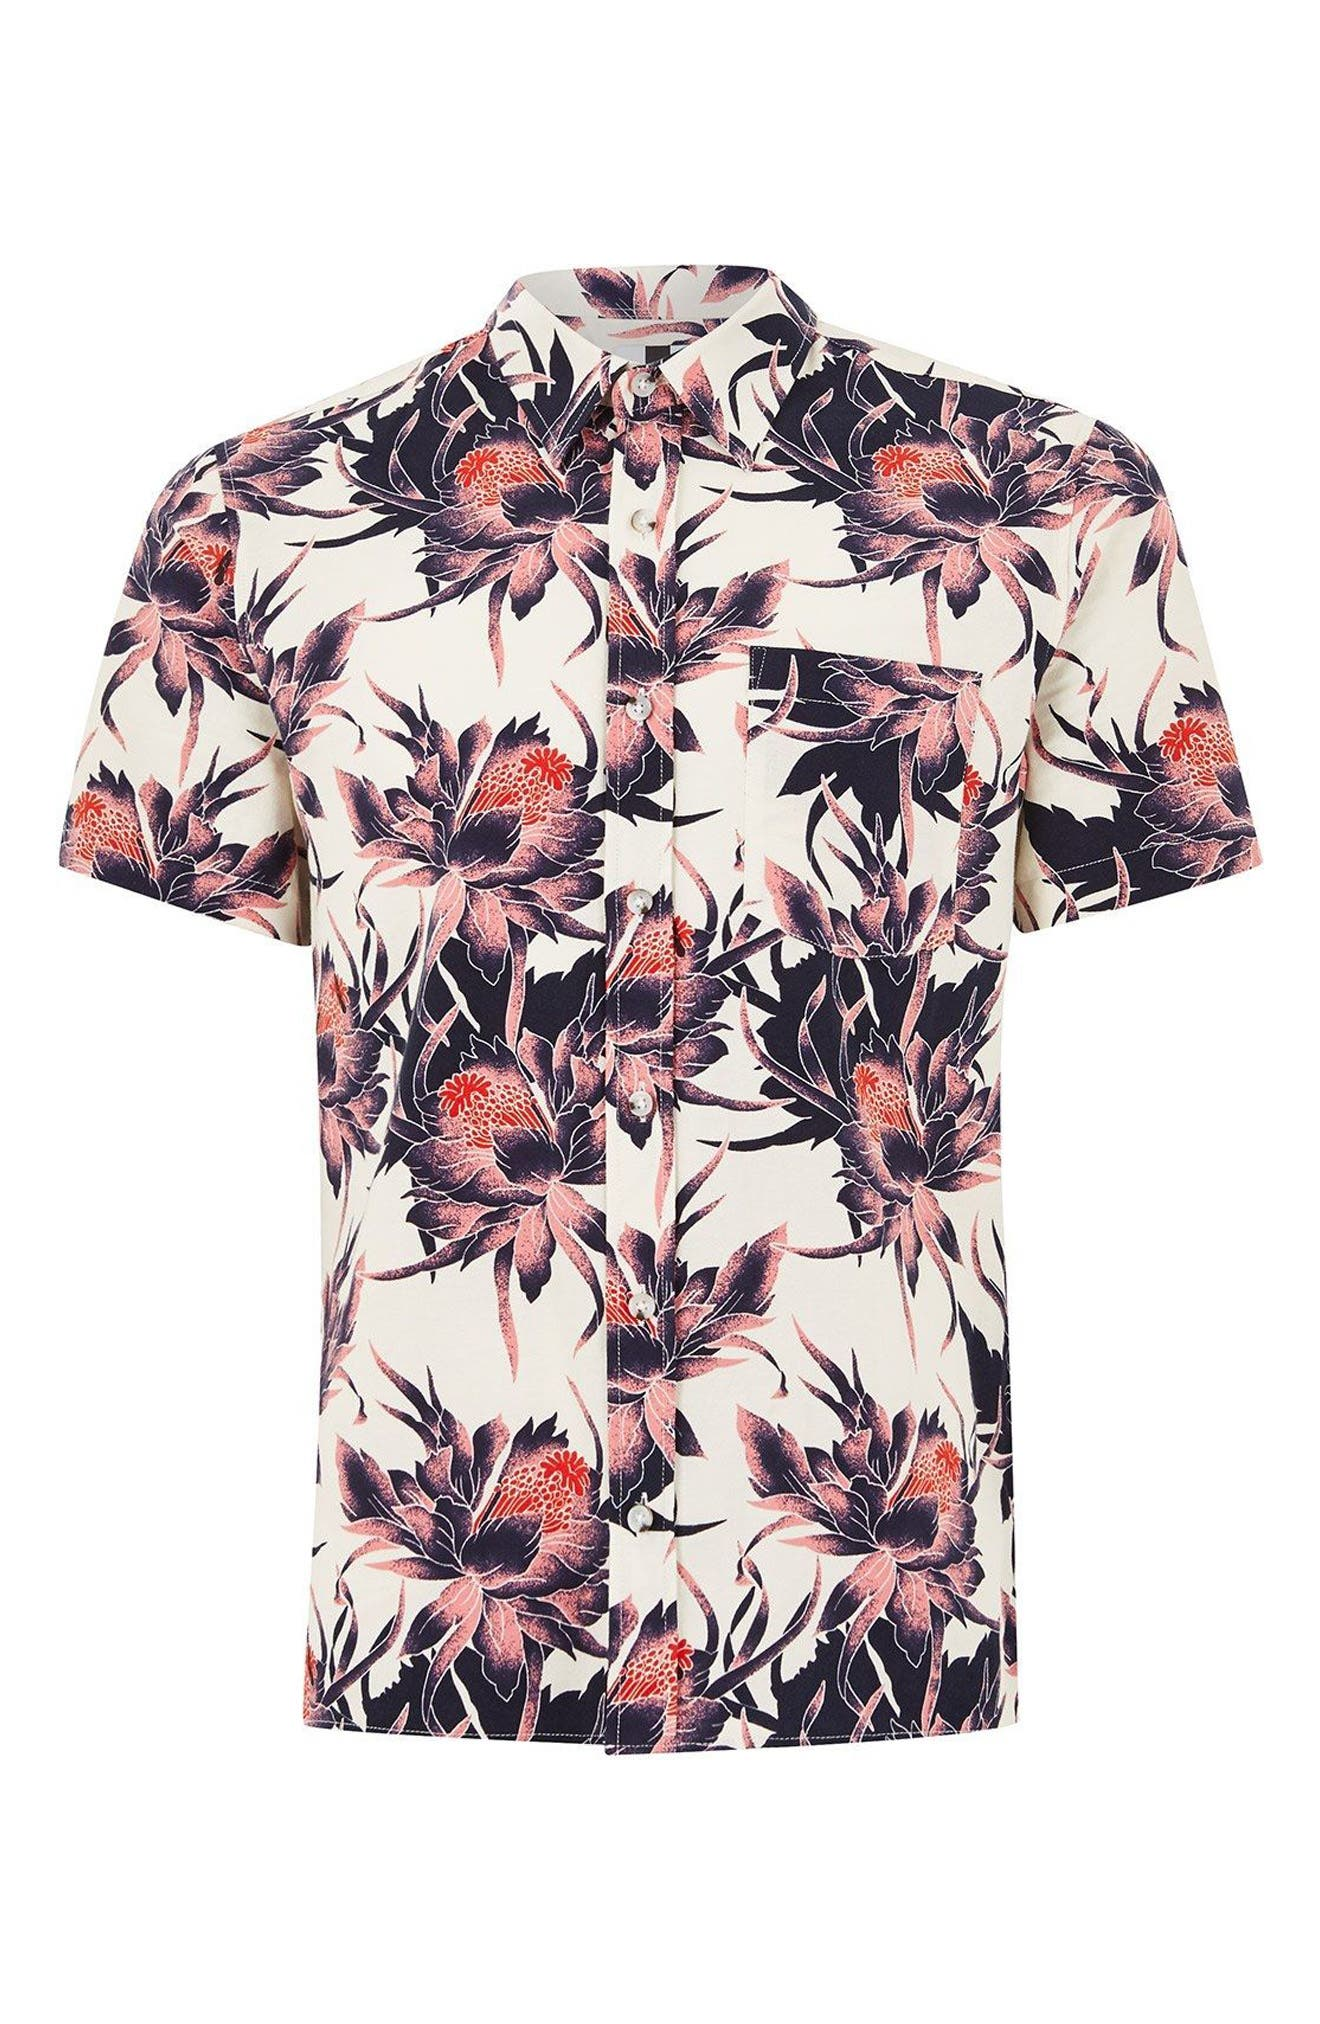 Floral Print Shirt,                             Alternate thumbnail 4, color,                             100